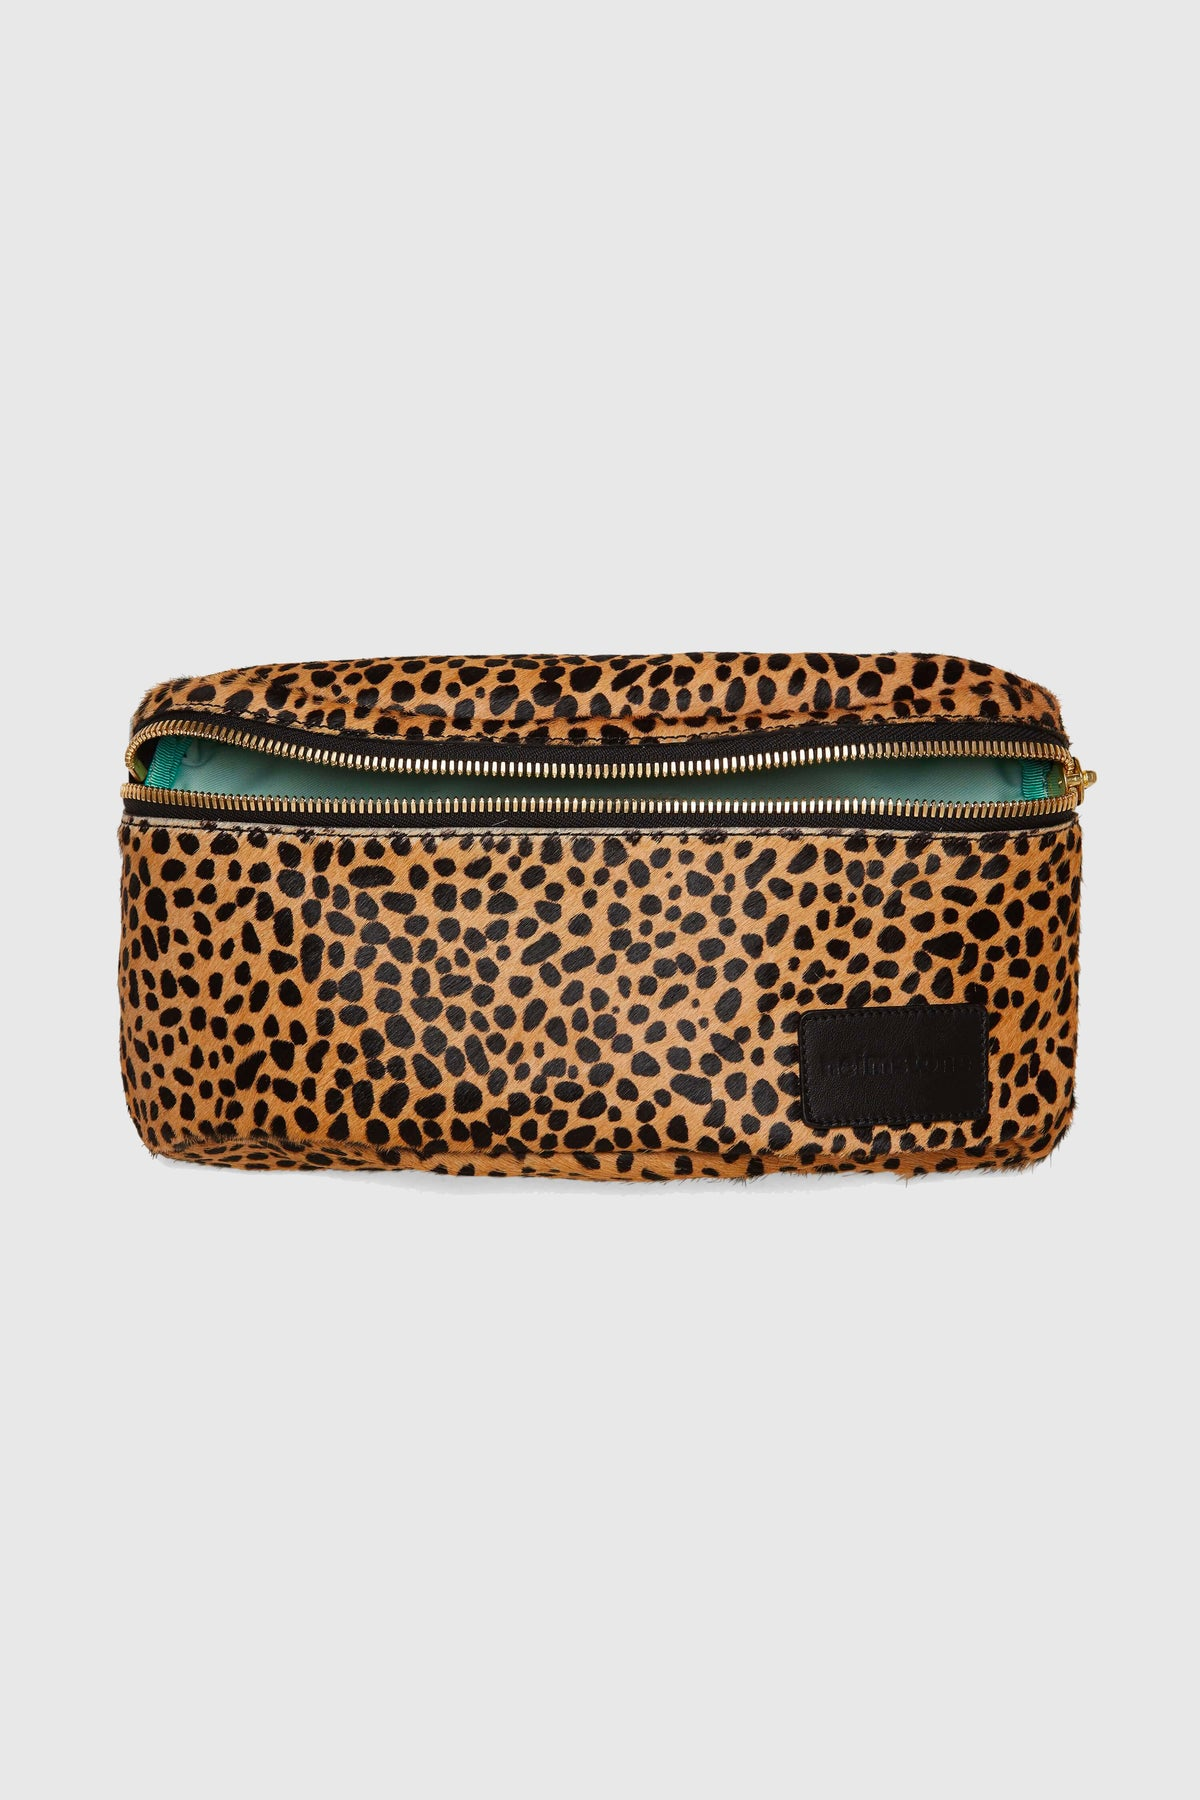 Fanny pack in cheetah printed leather